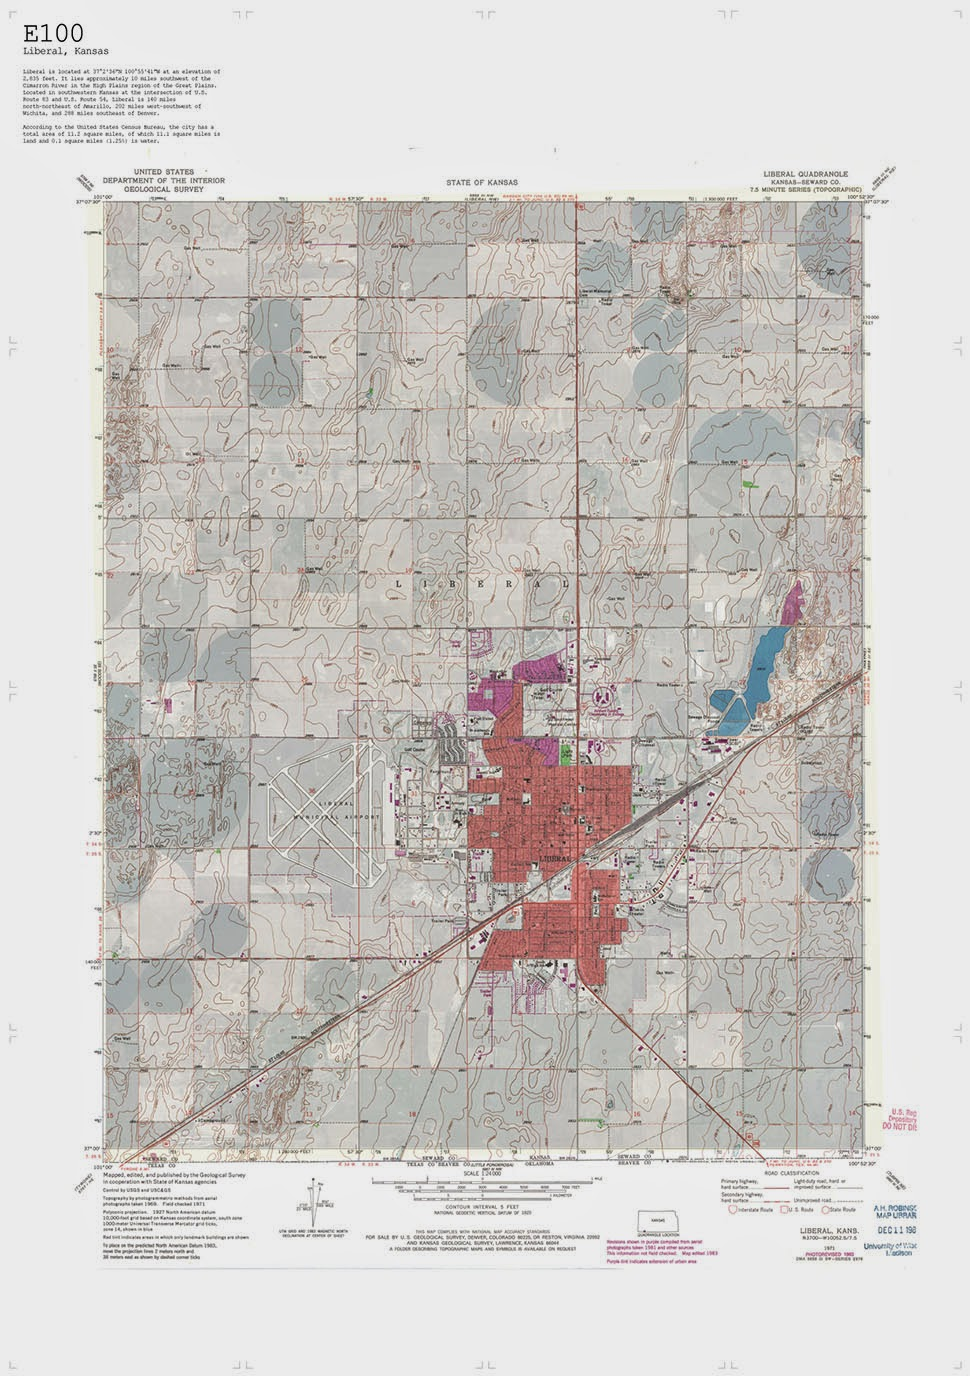 Images Cultivating The Map By Danny Wills